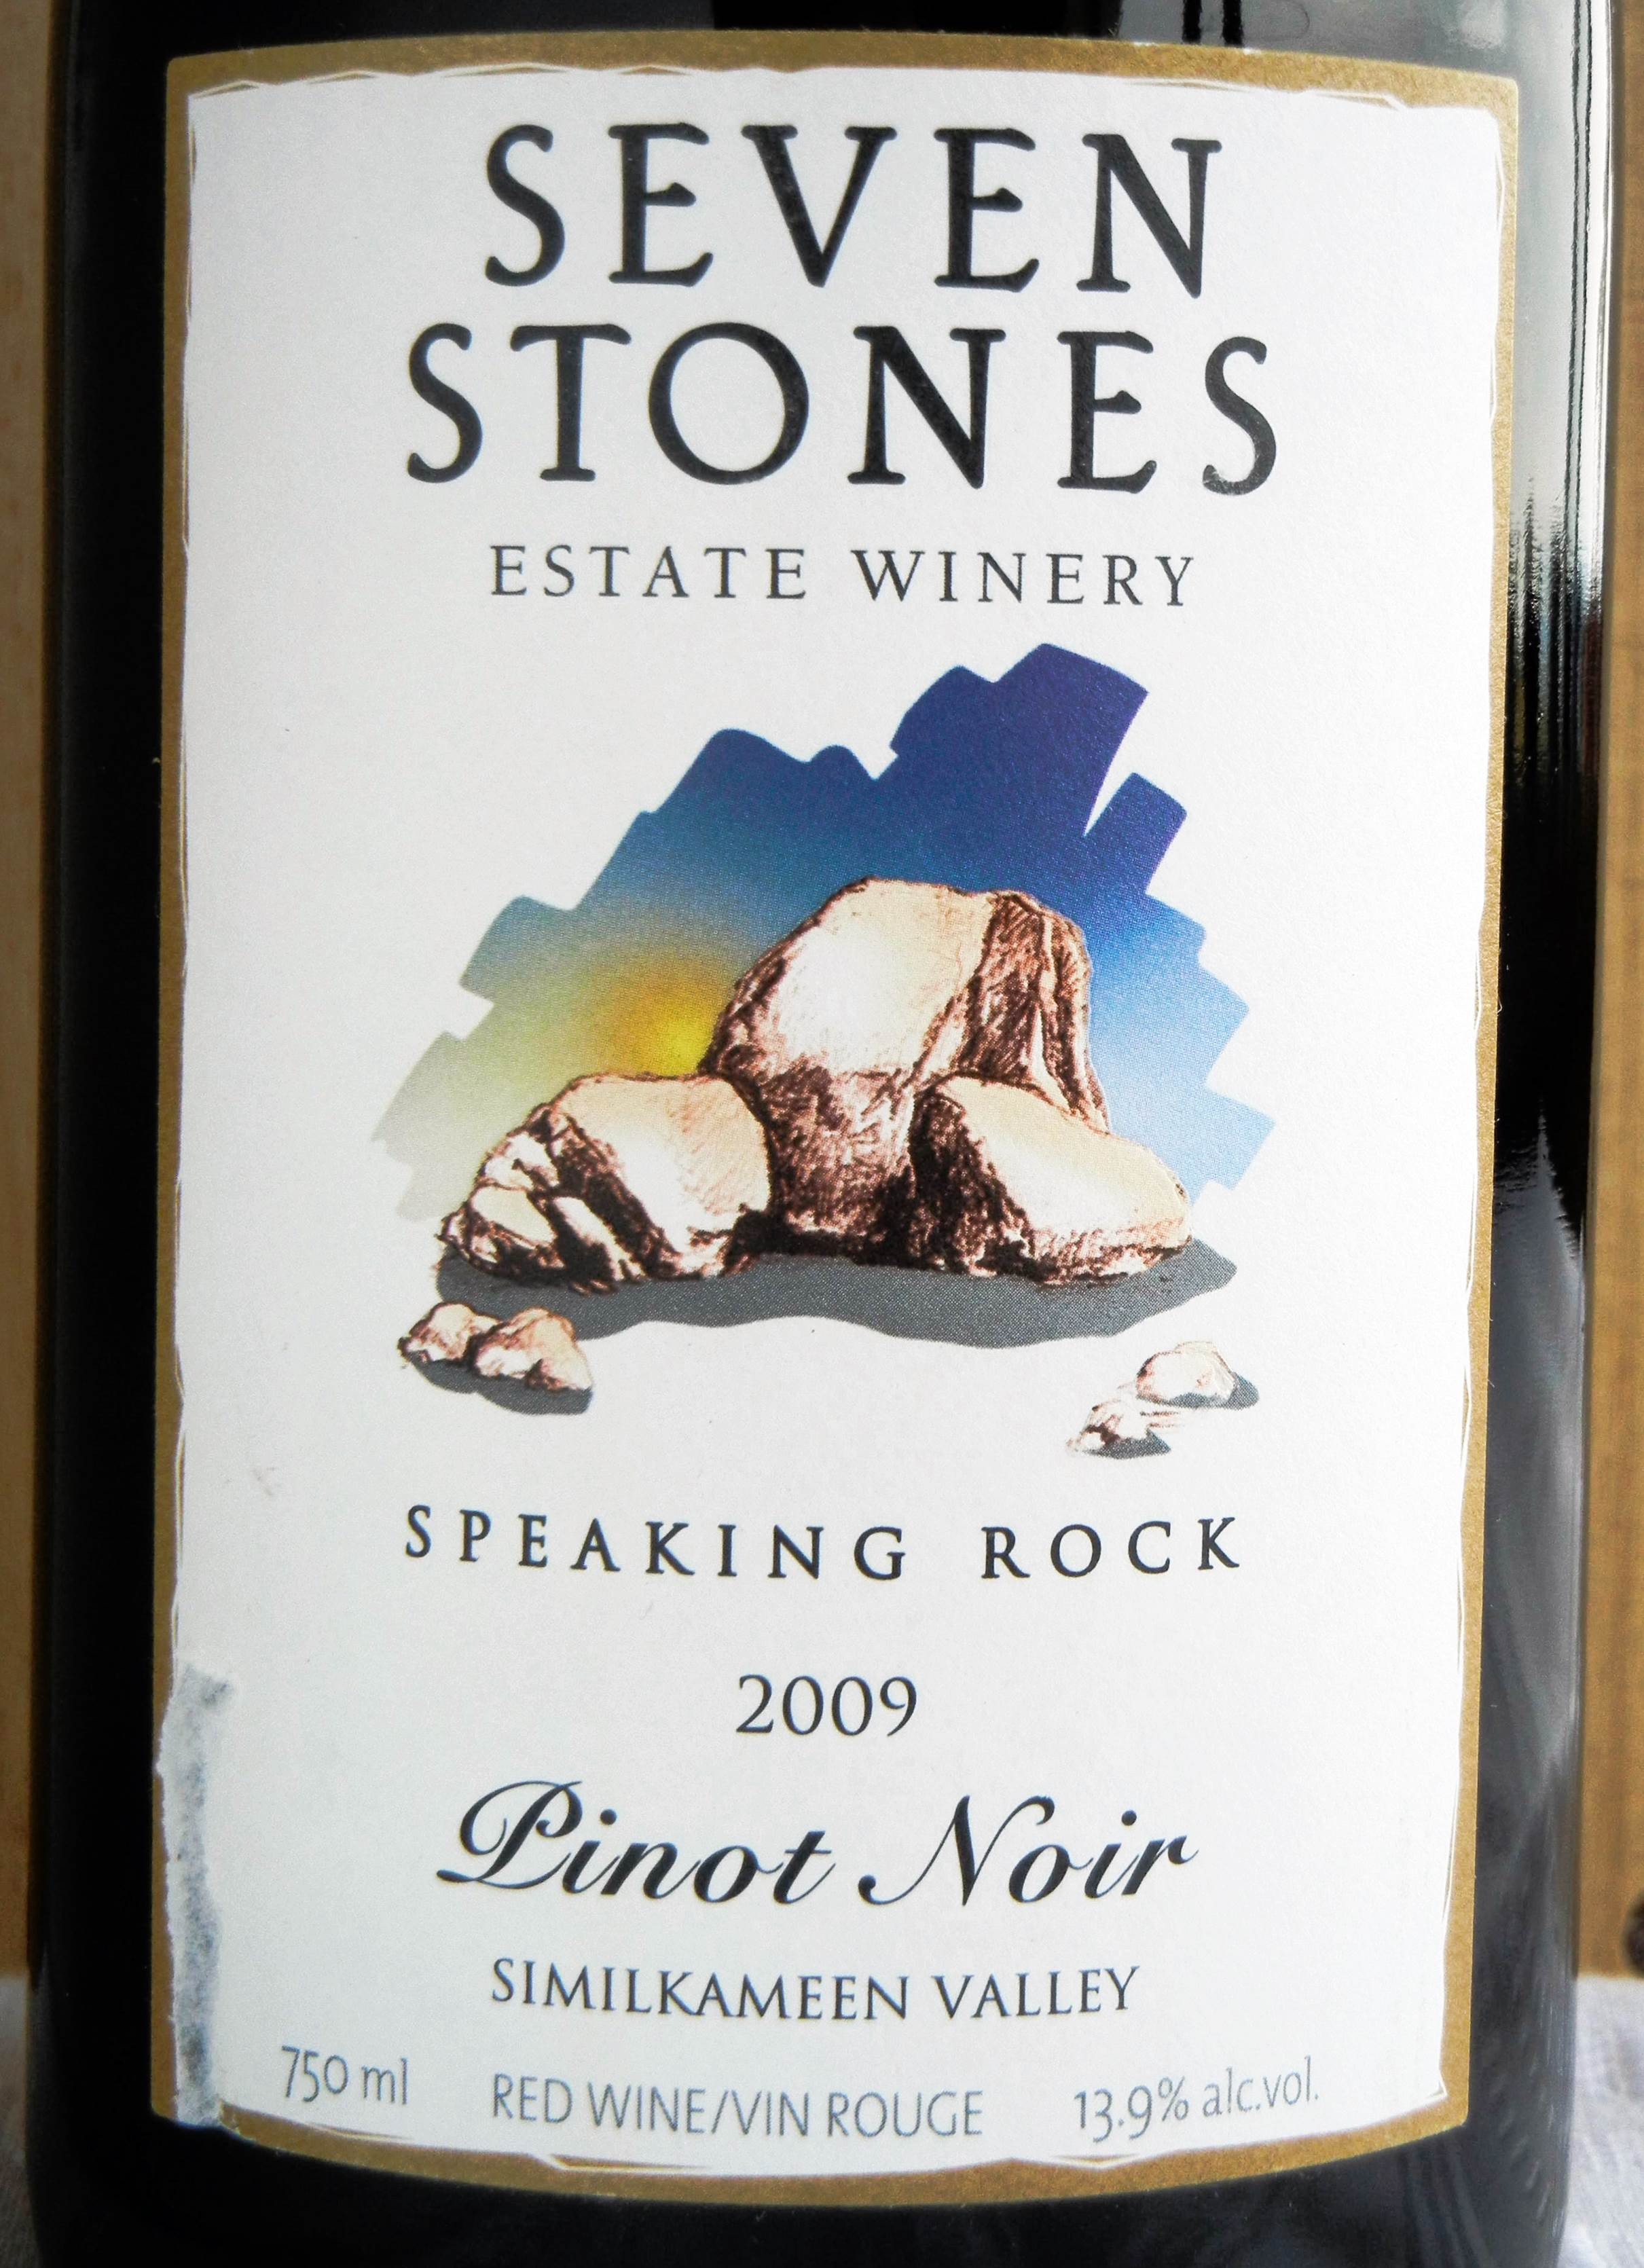 Seven Stones Pinot Noir 2009 Label - BC Pinot Noir Tasting Review 15